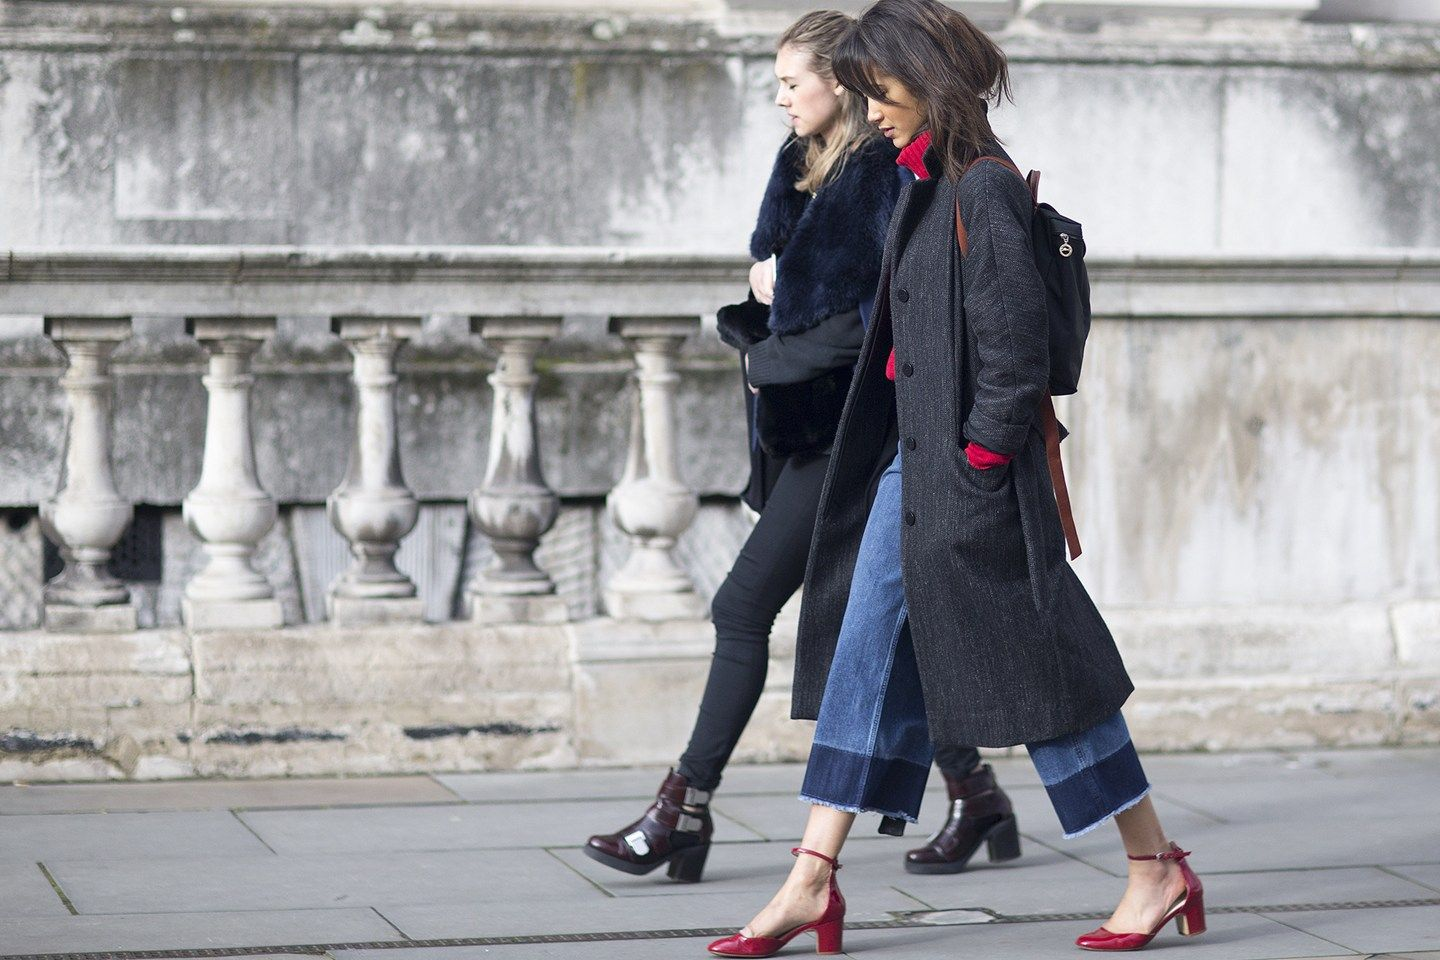 They're killin' it with style on the streets of New York, London and Milan at fashion week: http://bit.ly/1aIsKXT